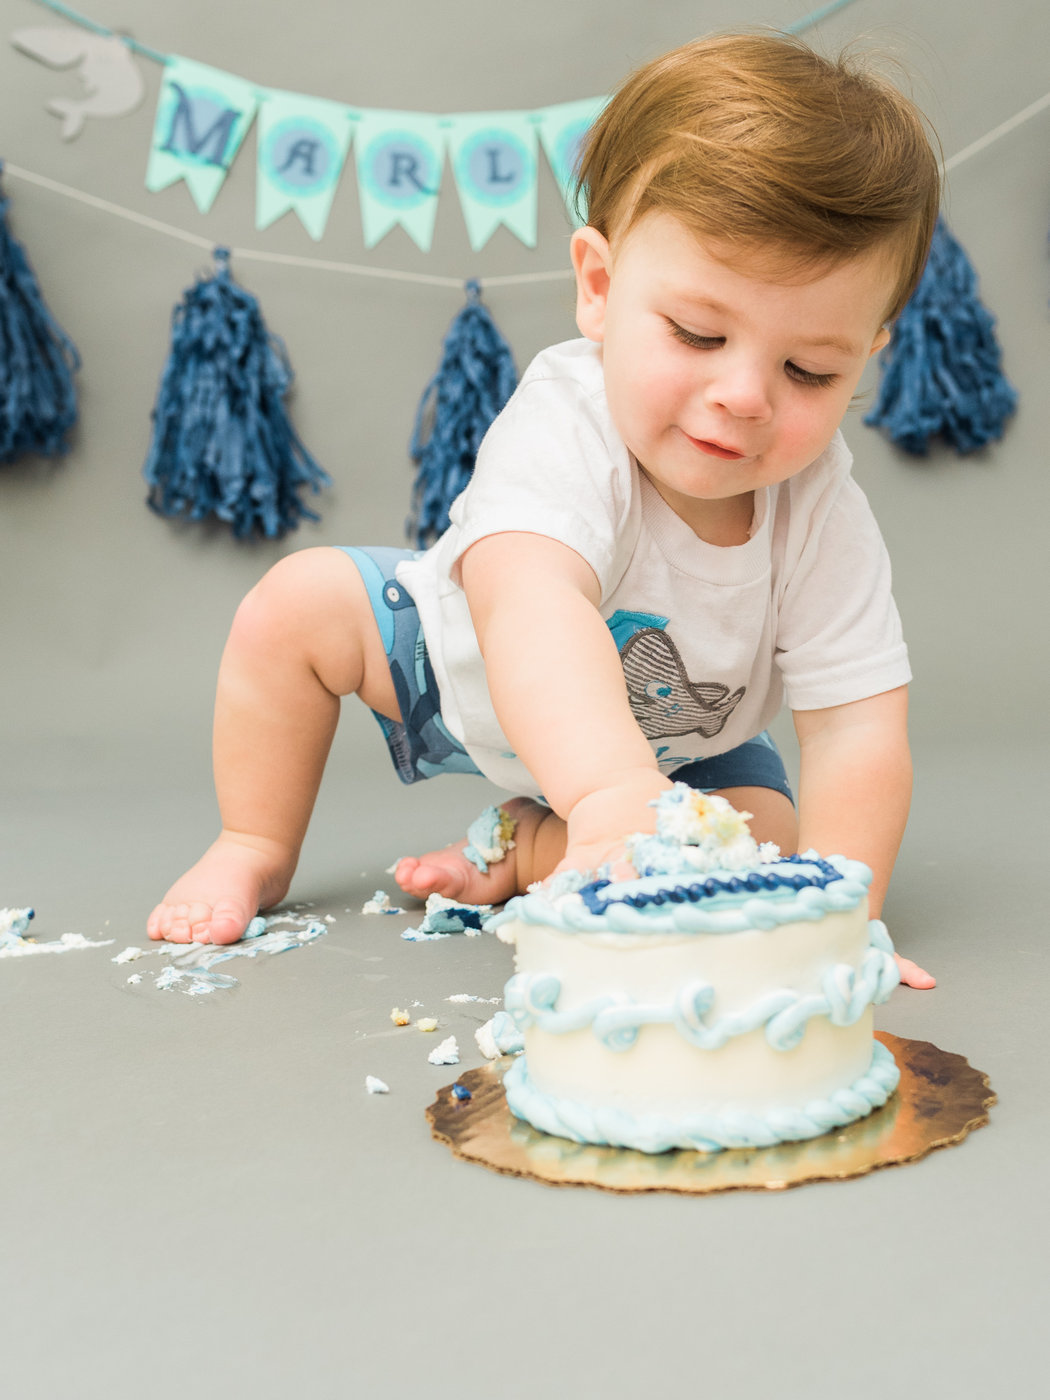 Marley s One Year Cake Smash-October 2017-0017